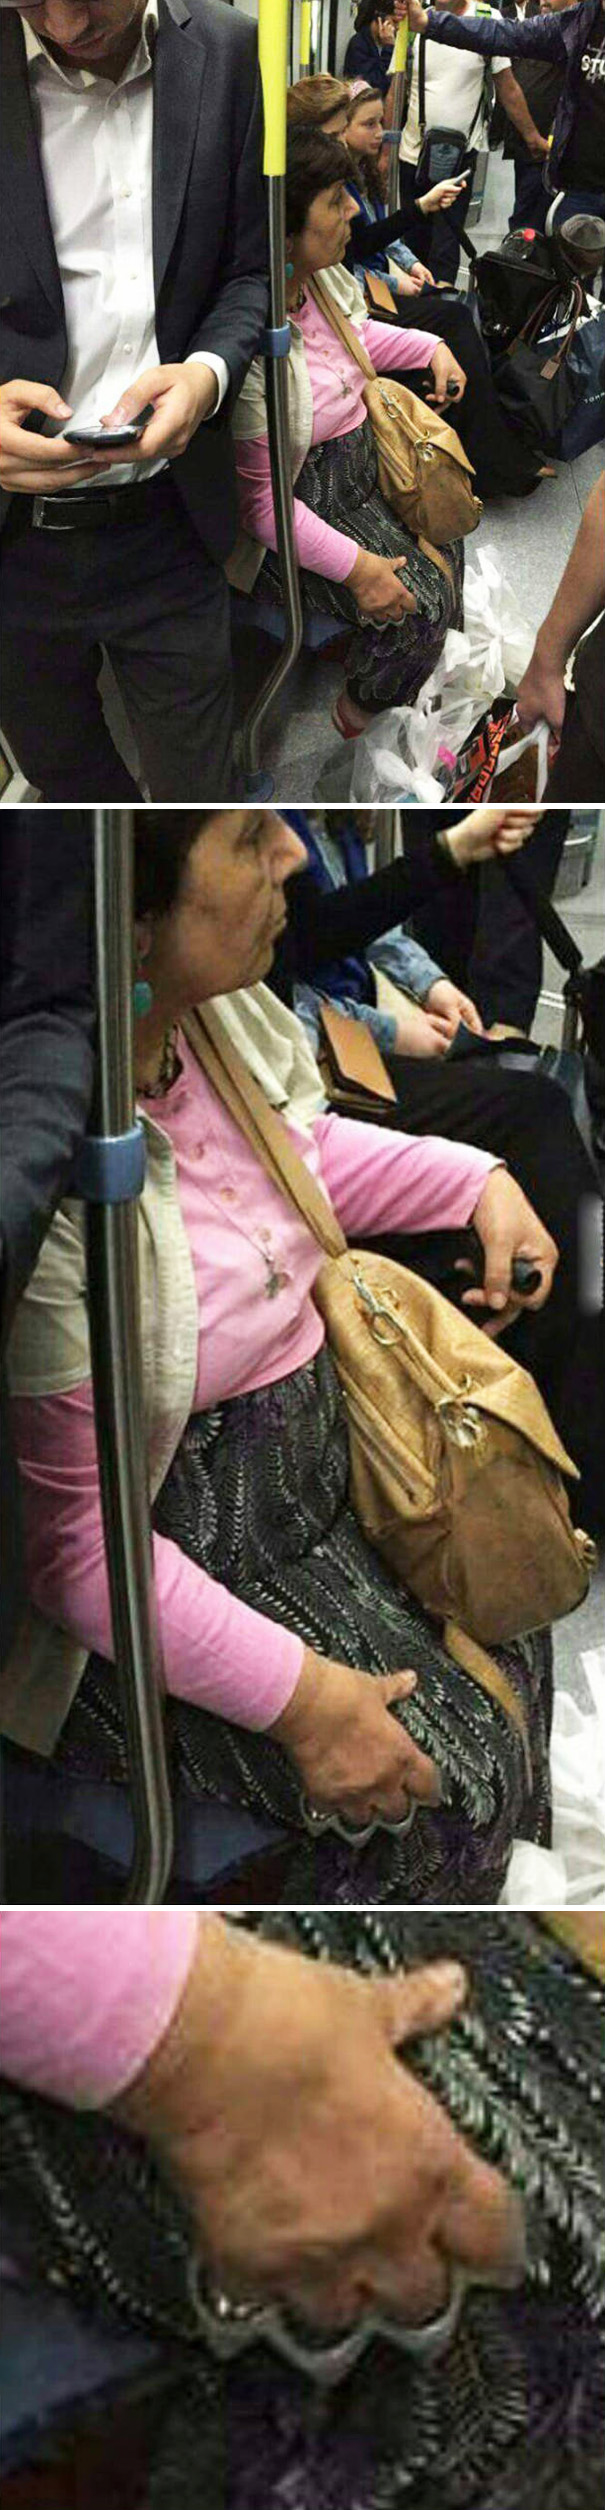 Old Lady In A Subway